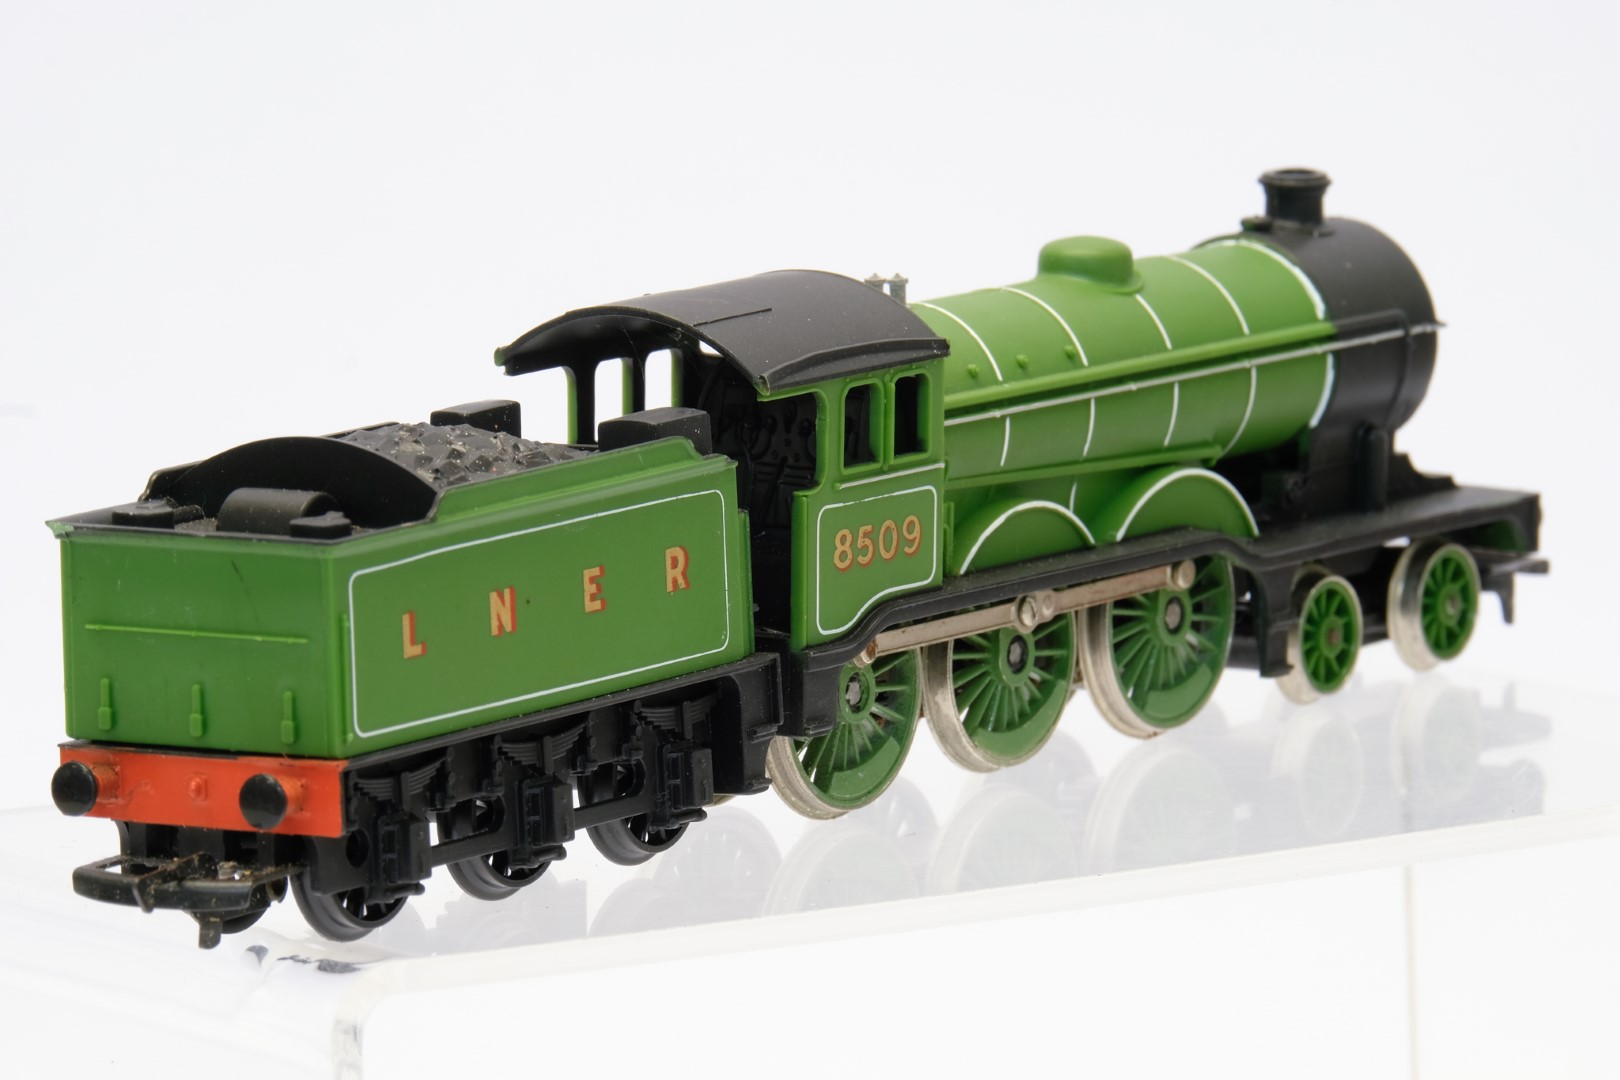 Hornby Class B12 Locomotive And Tender LNER 8509 - No Box - Image 3 of 3